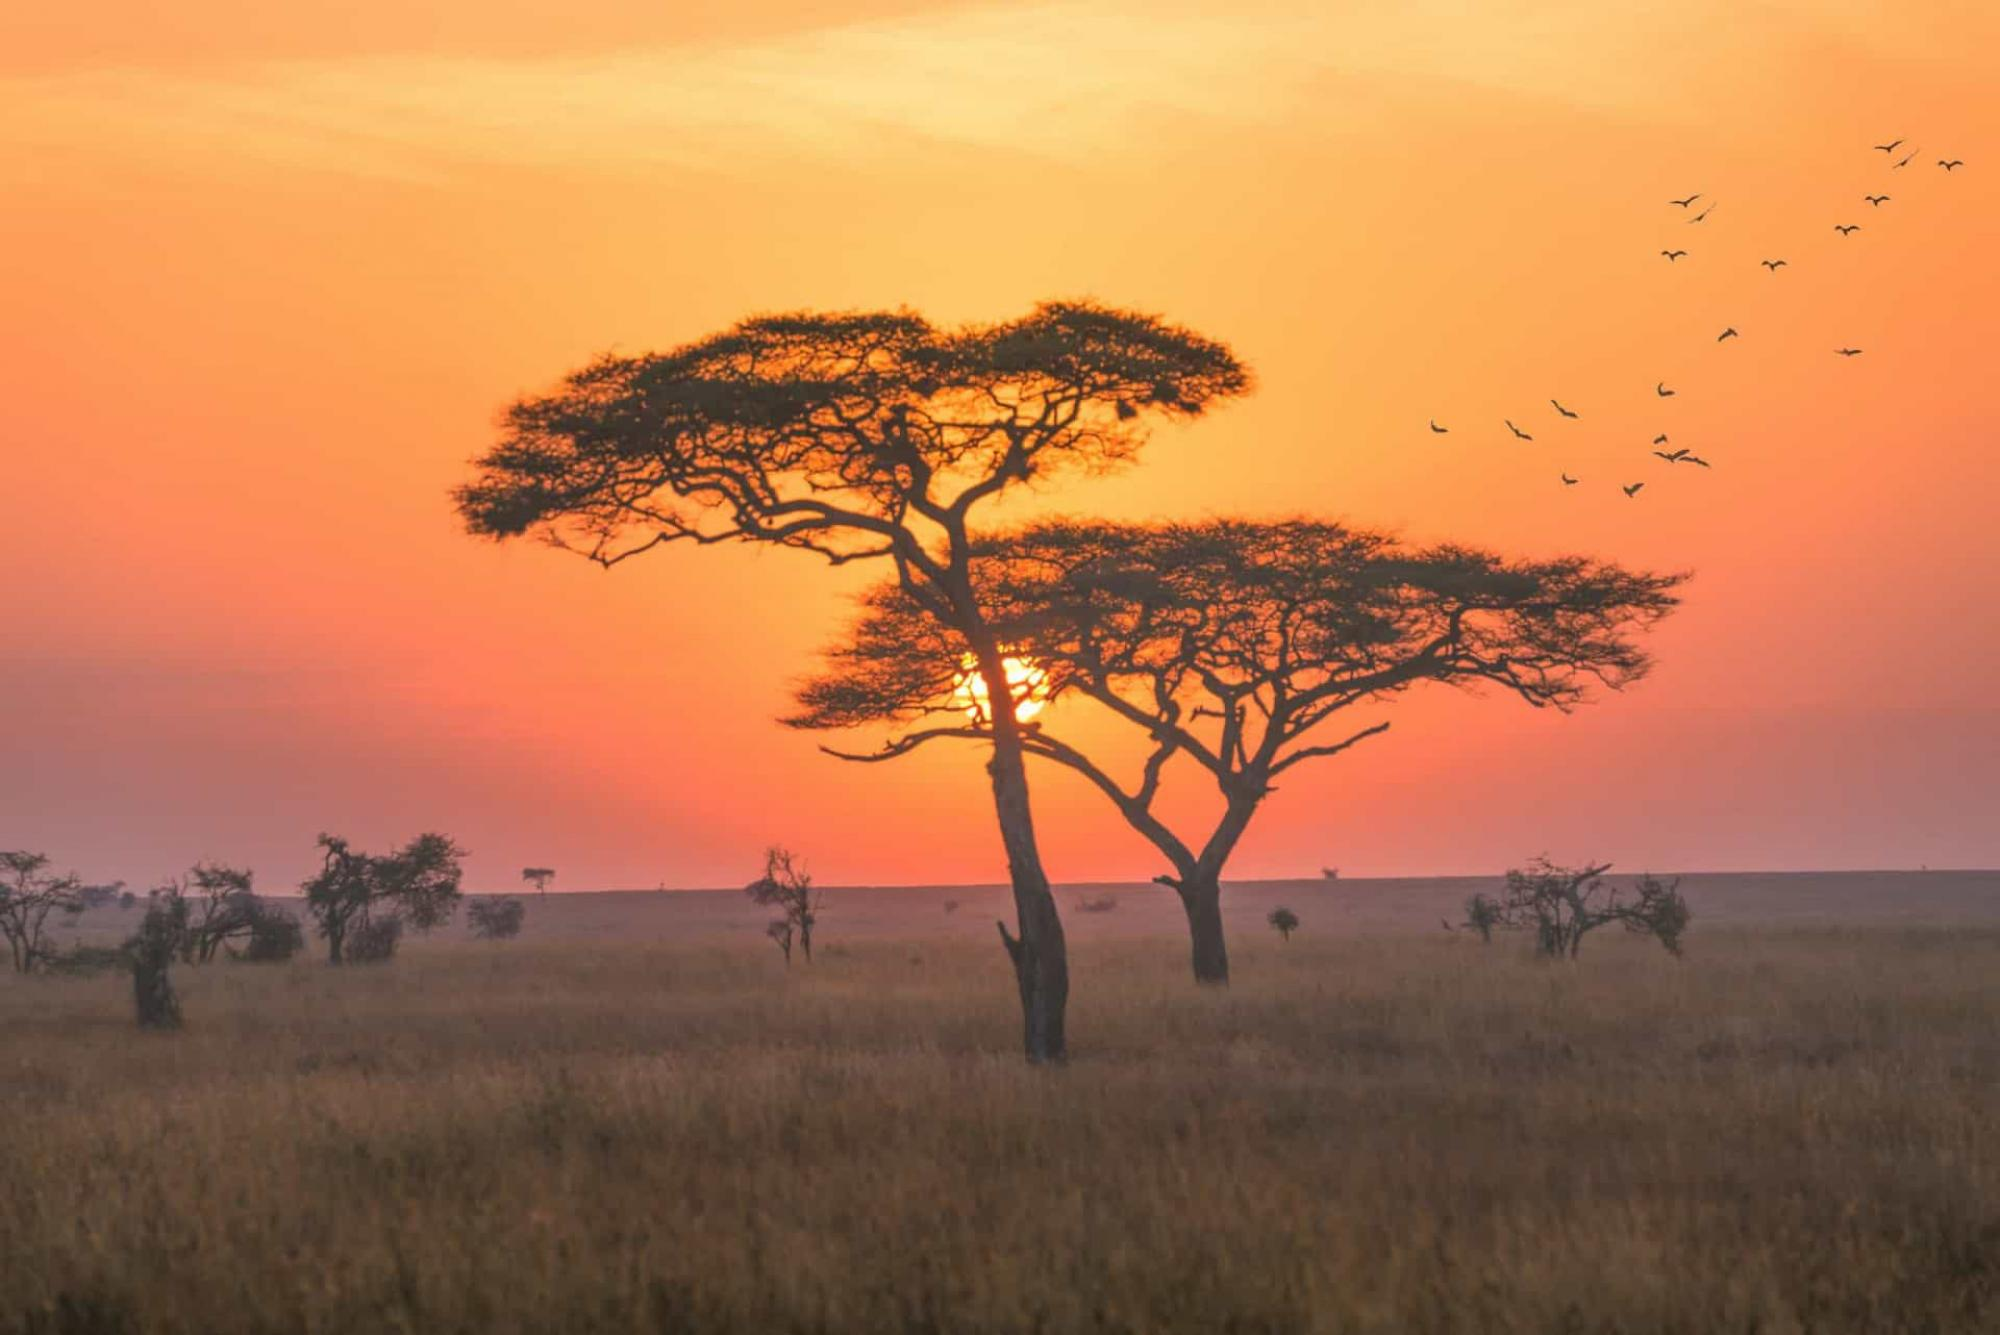 Two trees stand in front of a colorful sunset on a plain in Kenya